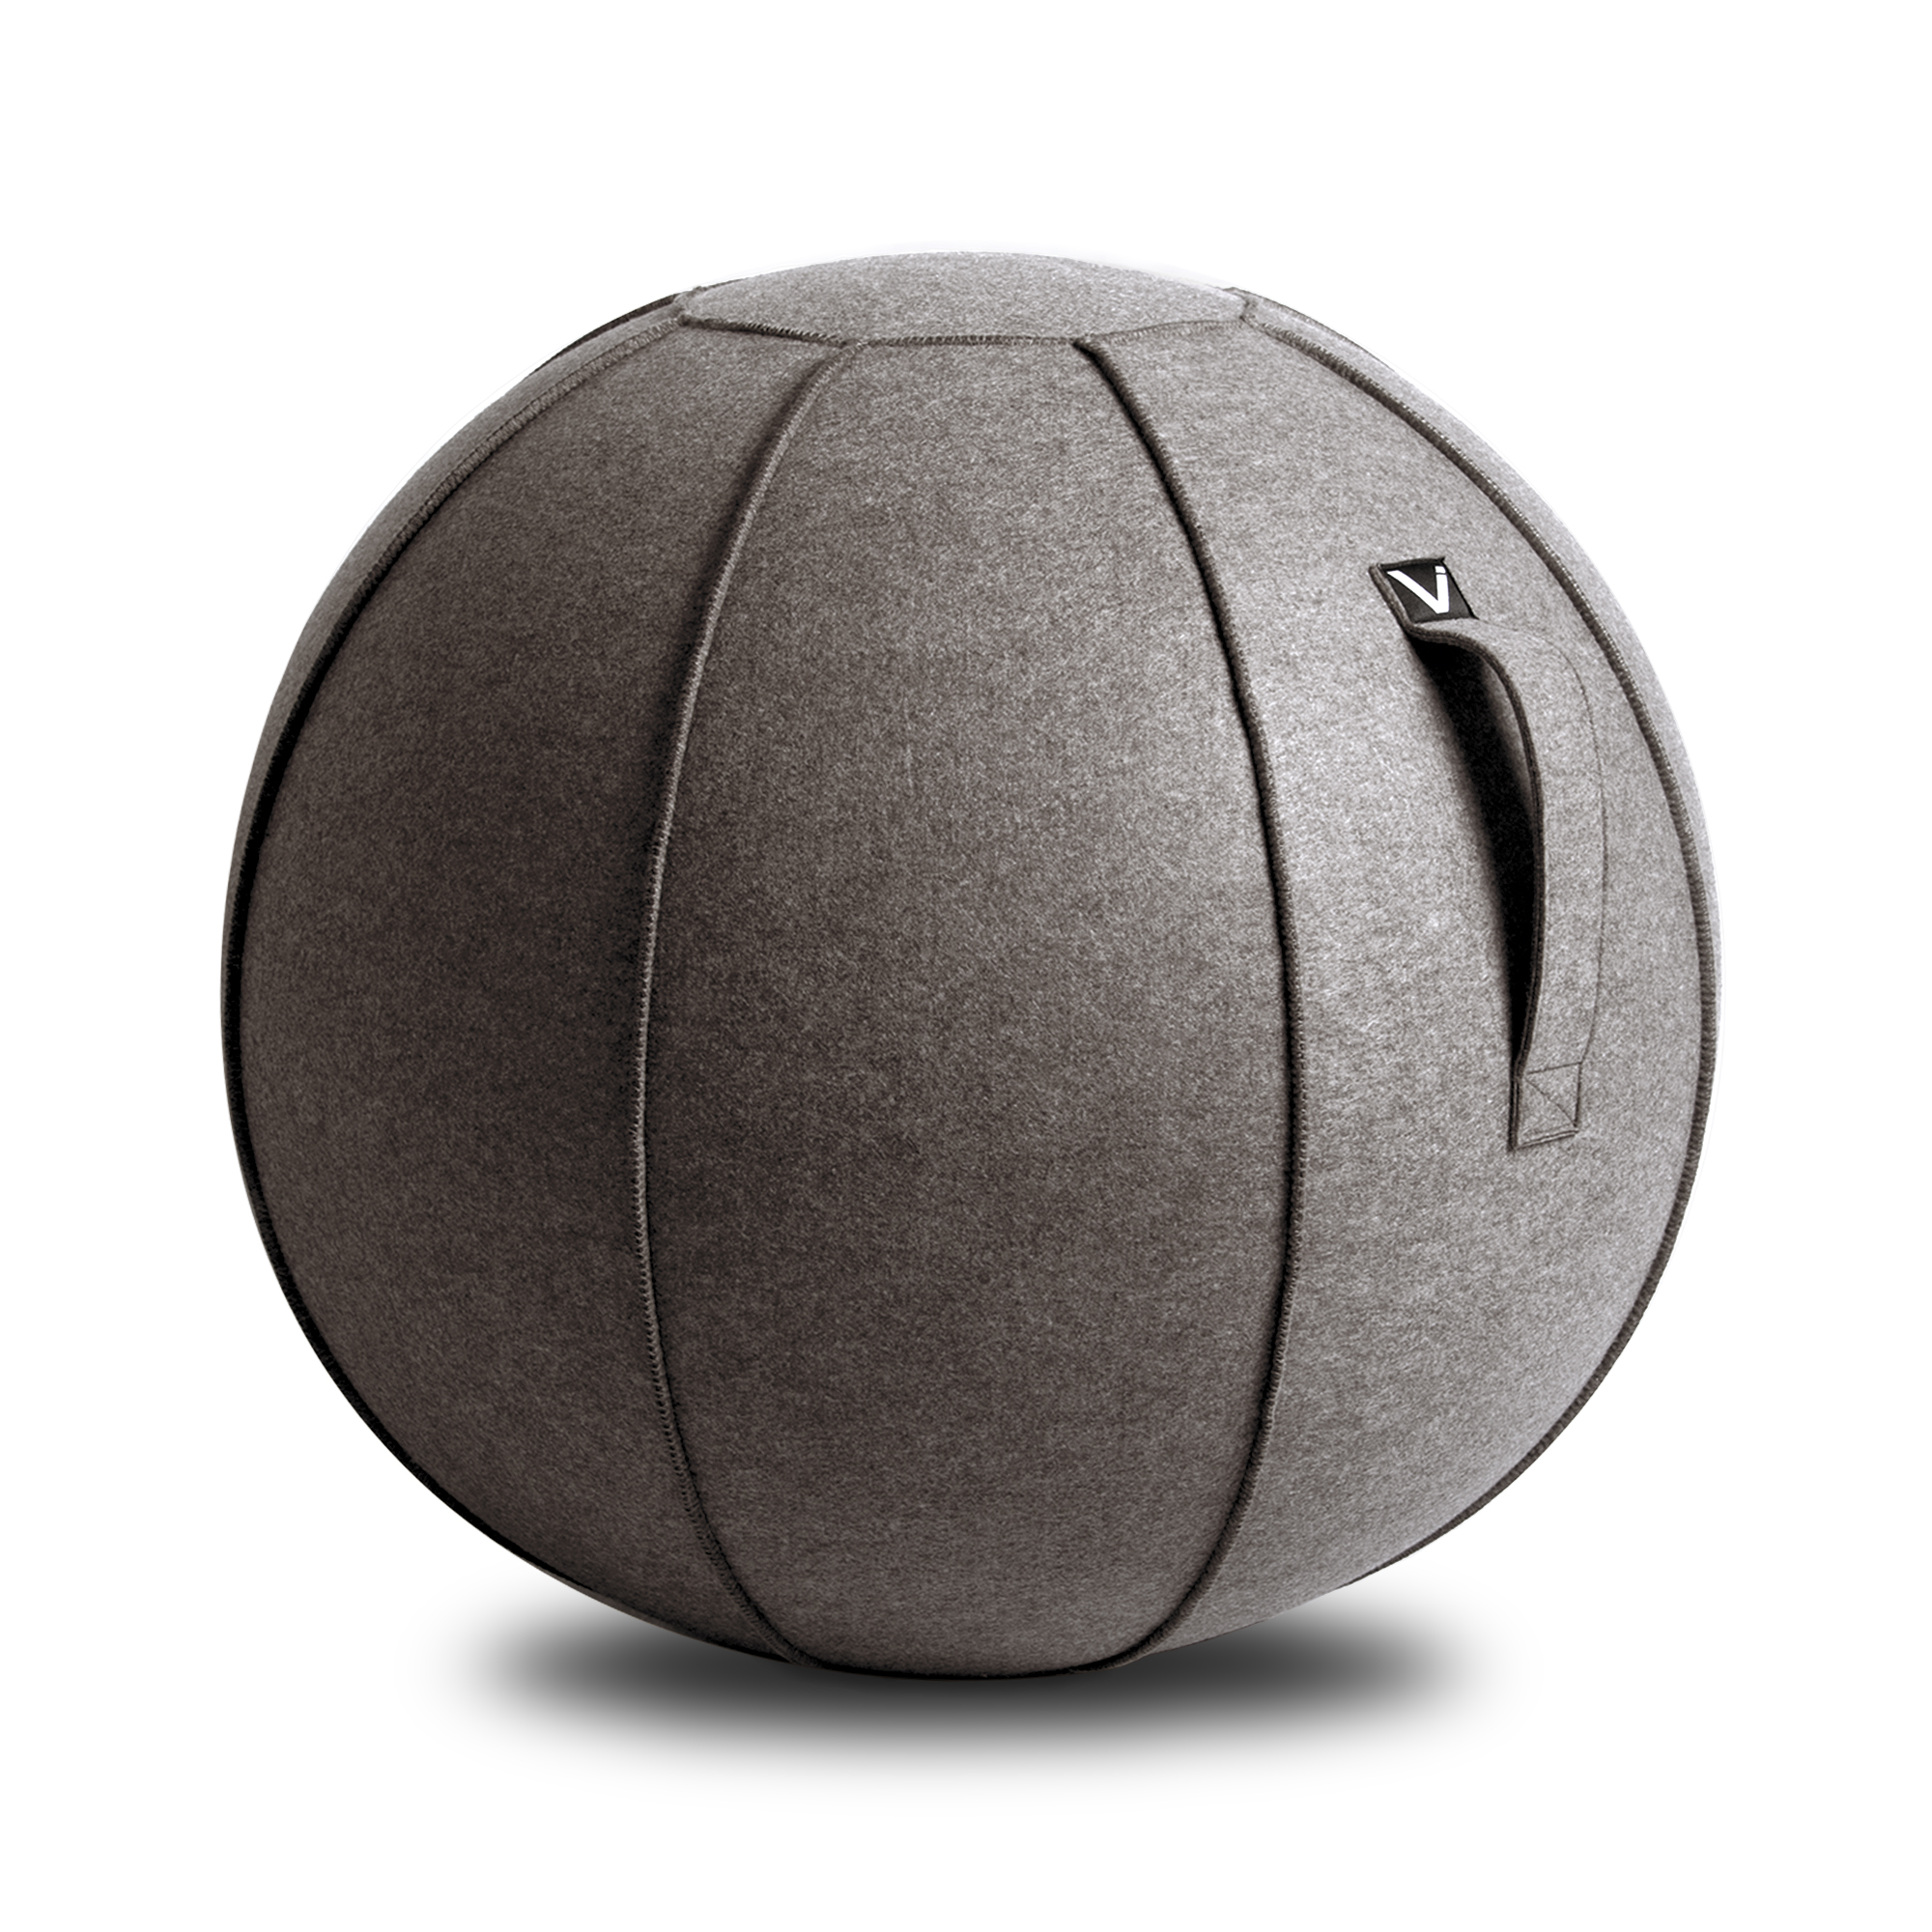 Vivora Luno Clay Sitting Ball Chair or office or home